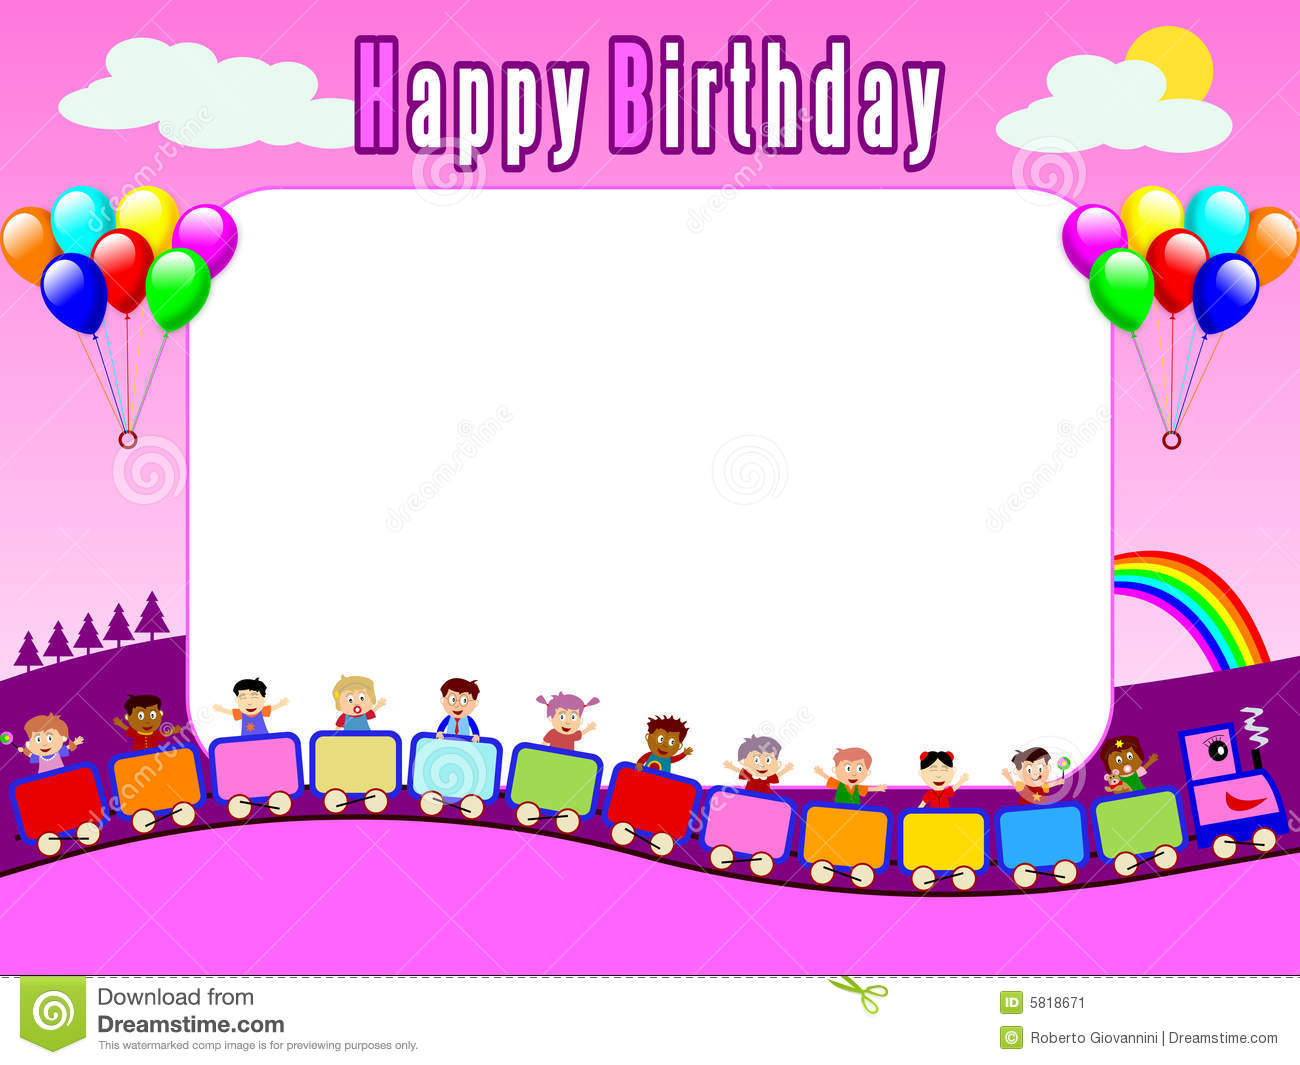 birthday card frame download - Boat.jeremyeaton.co